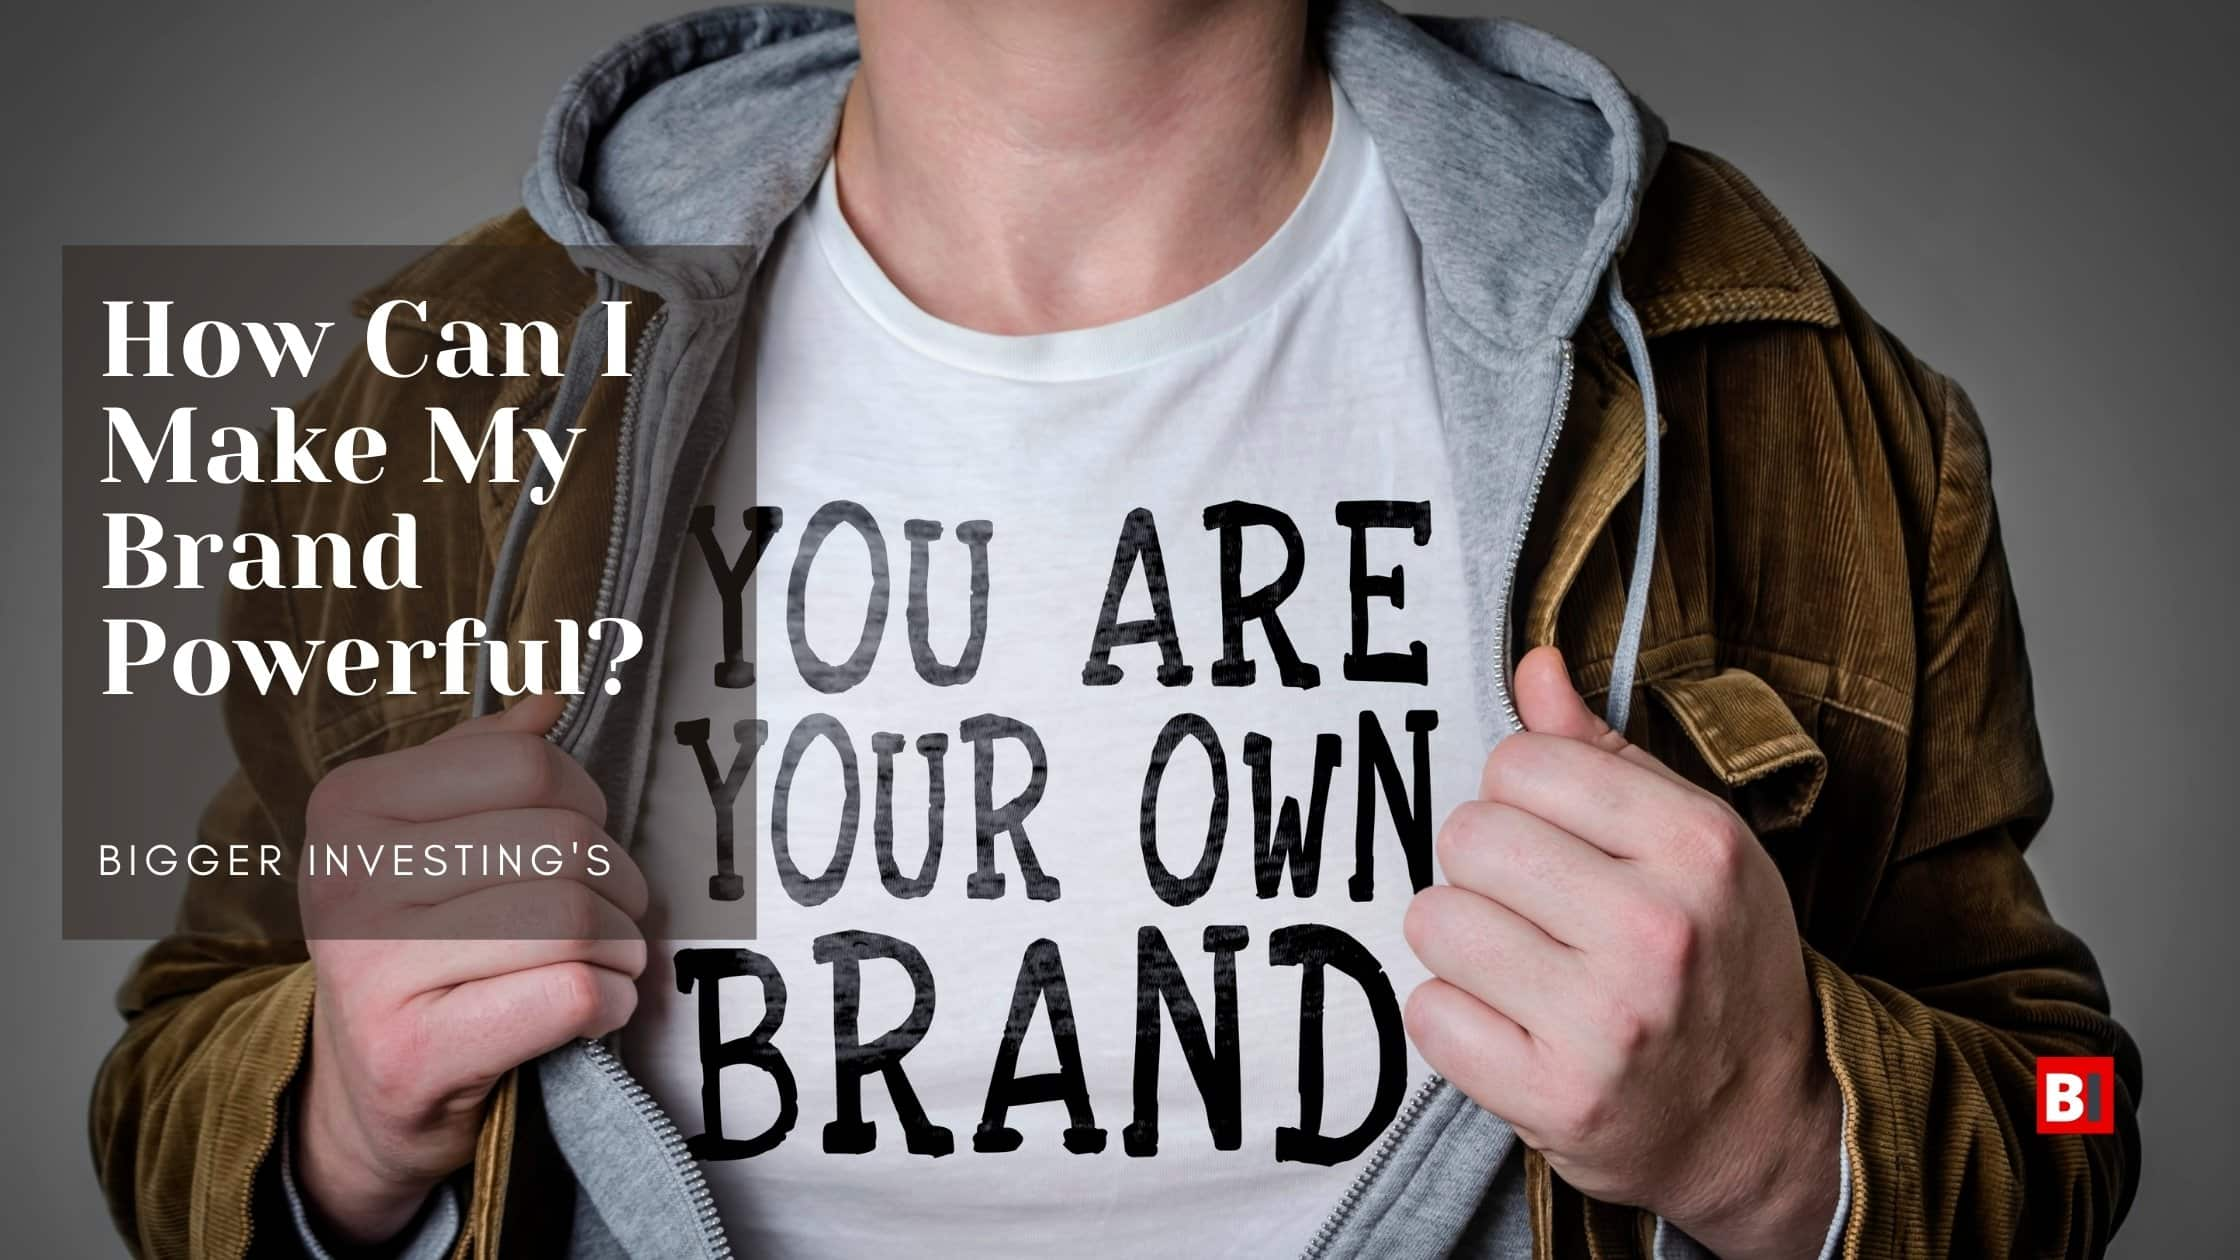 How Can I Make My Brand Powerful?